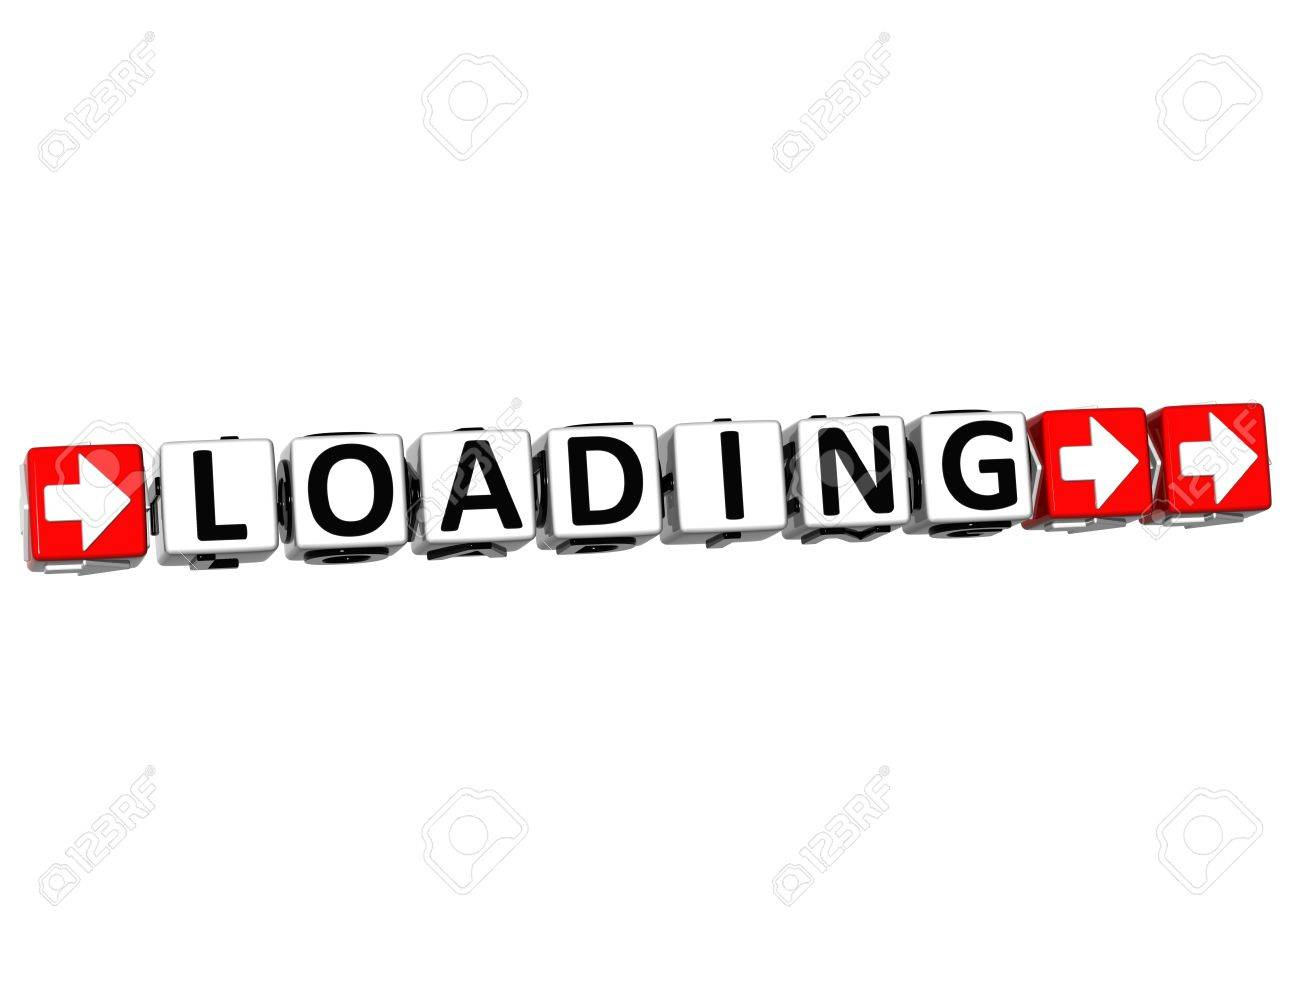 3d loading button click here block text over white background stock